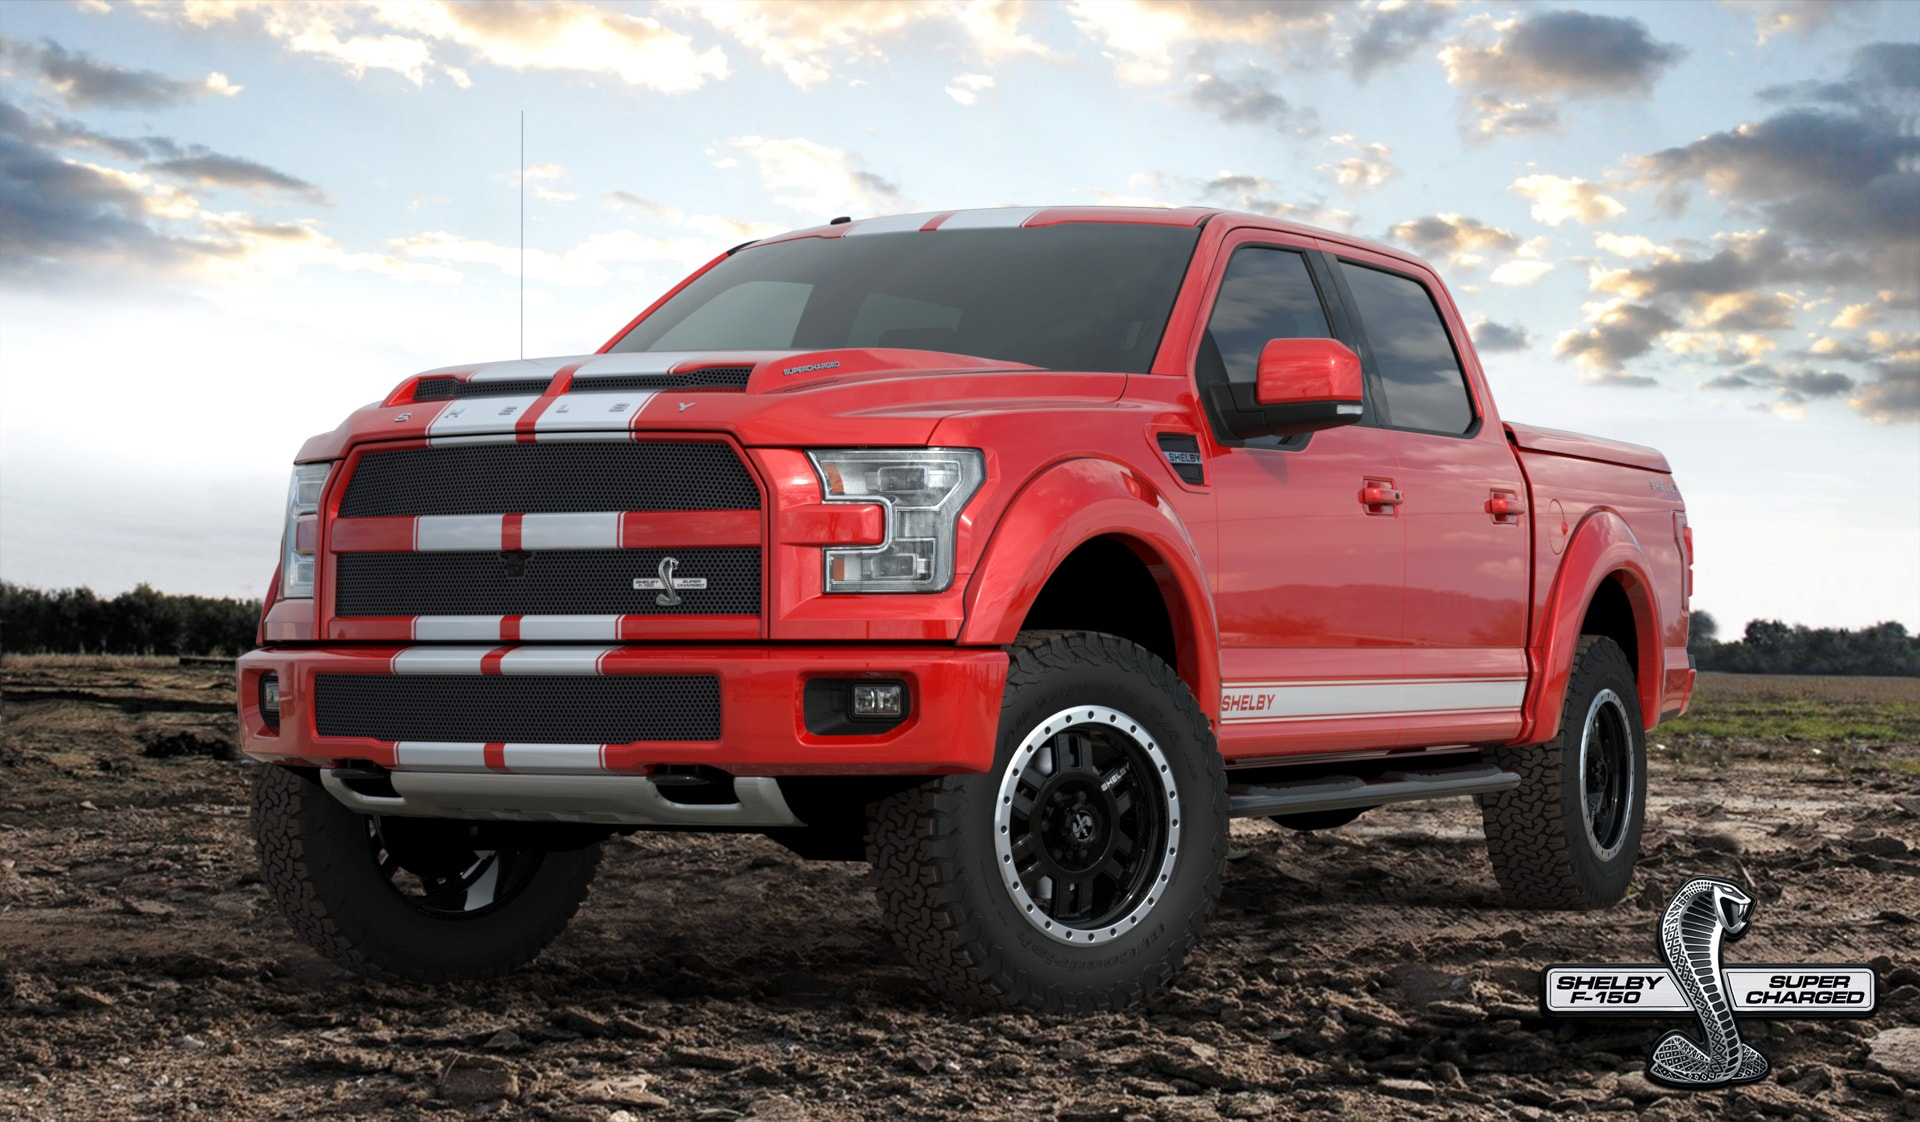 view high performance truck inventory - Ford Truck 2015 Black